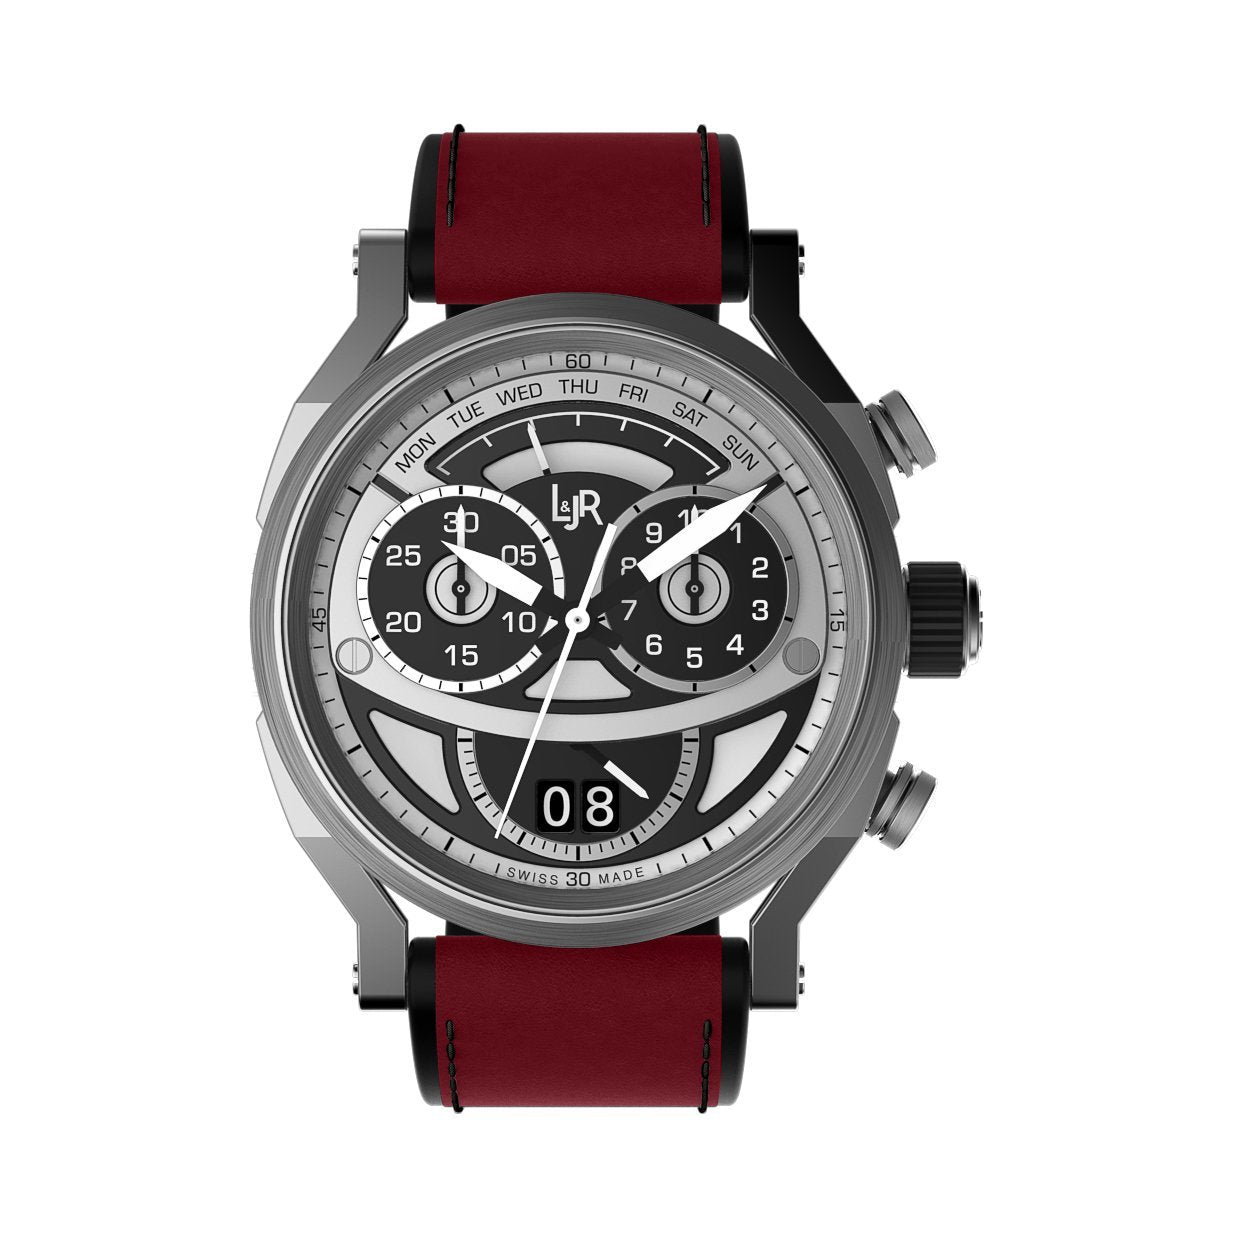 L&Jr Chronograph Day and Date 2 Tone Burgundy